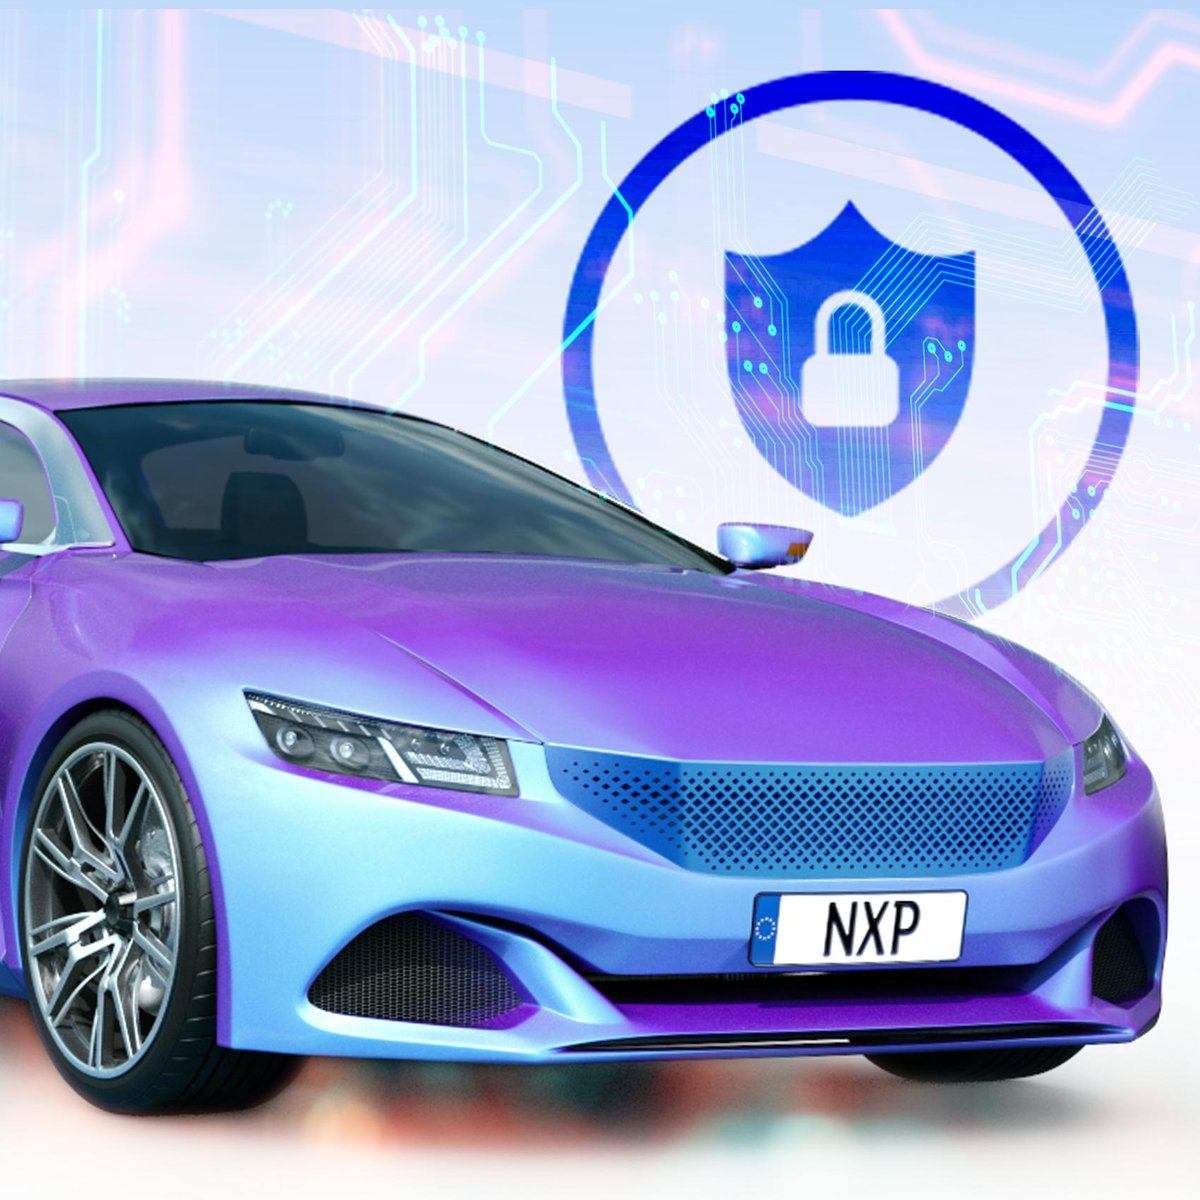 Nxp On Twitter If You Re An Auto Or Industrial Design Engineer You Re Probably Familiar With Functional Safety But What S Your Role In The Process How Do You Define Safety Goals Assess Hazards